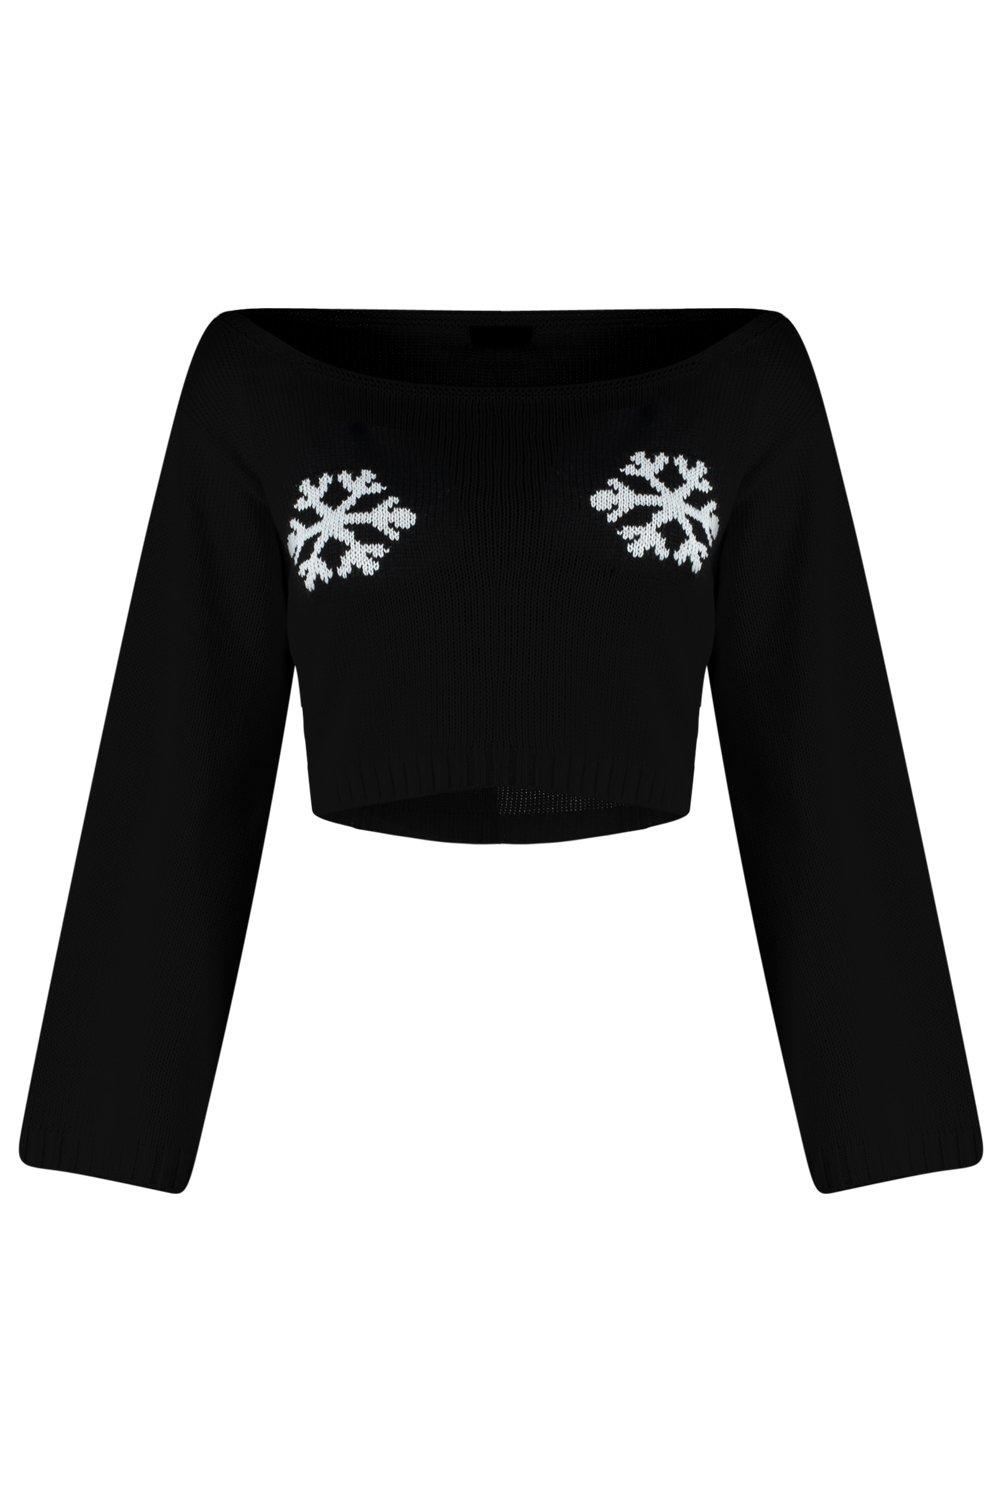 Image result for sara snowflake bell sleeve jumper